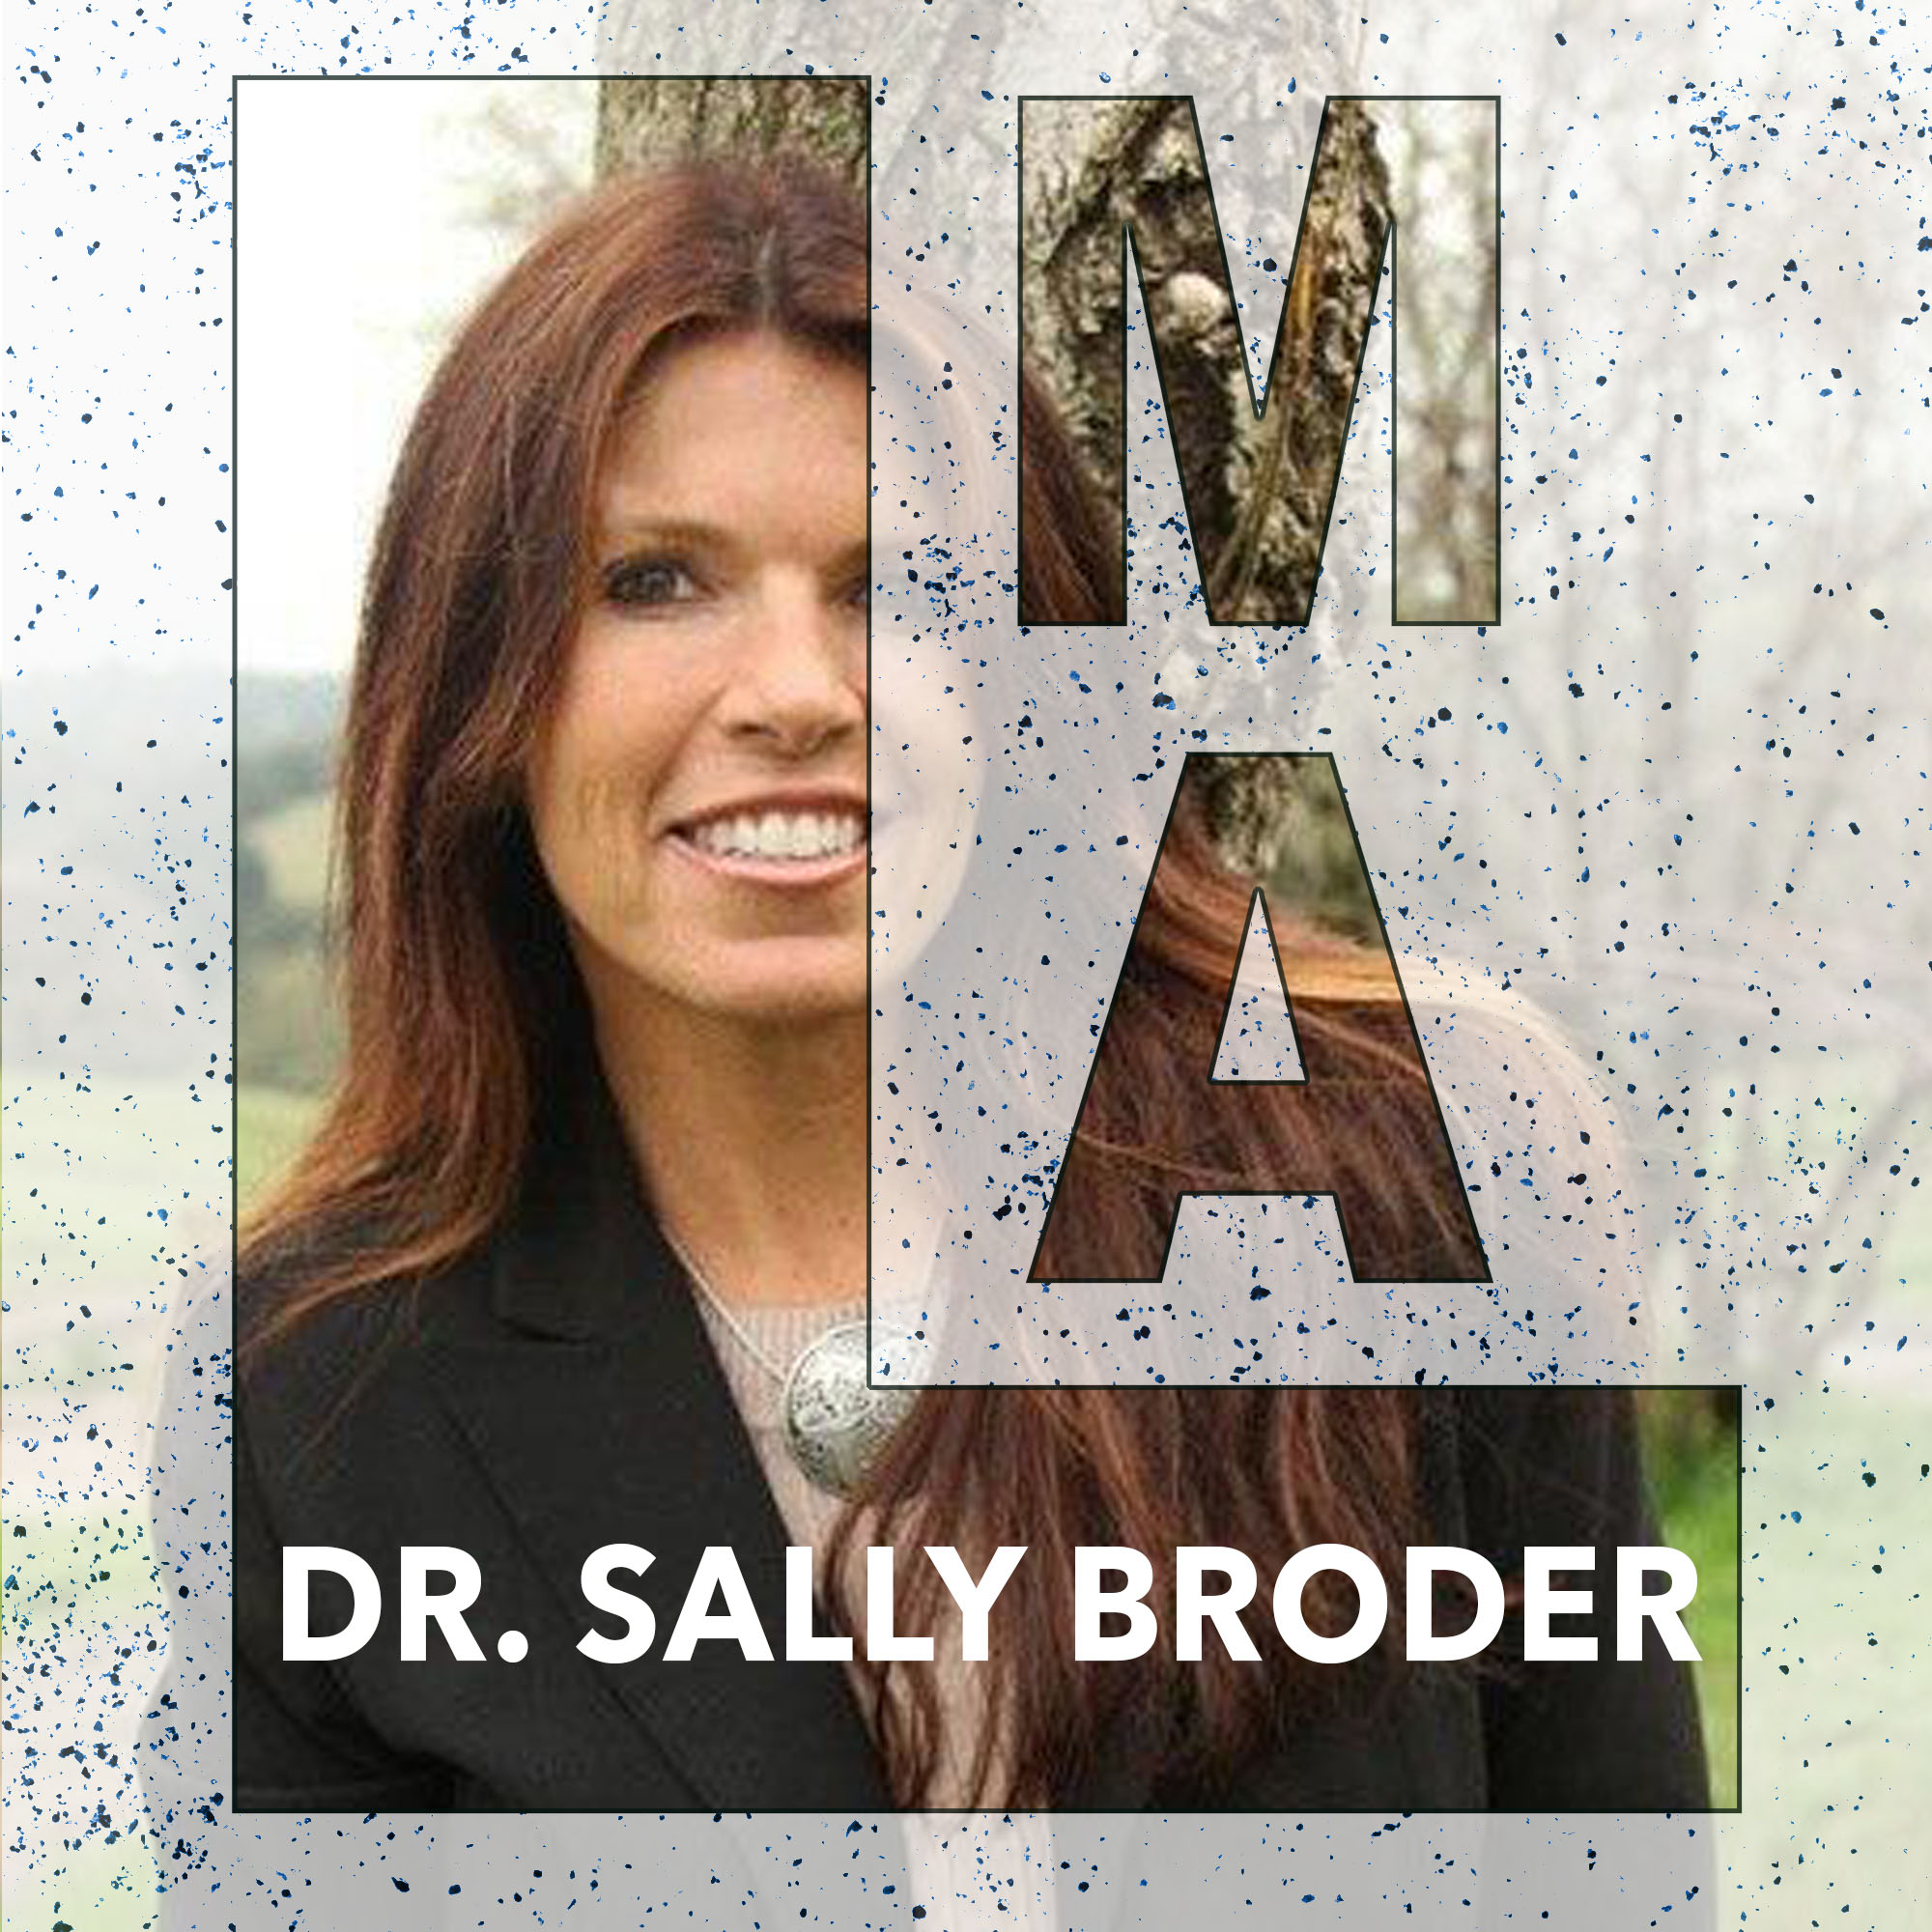 010 - Dr. Sally Broder - psychologist working with the NFL, NBA, law enforcement, veterans, and addicts with a side specialty in equine therapy.